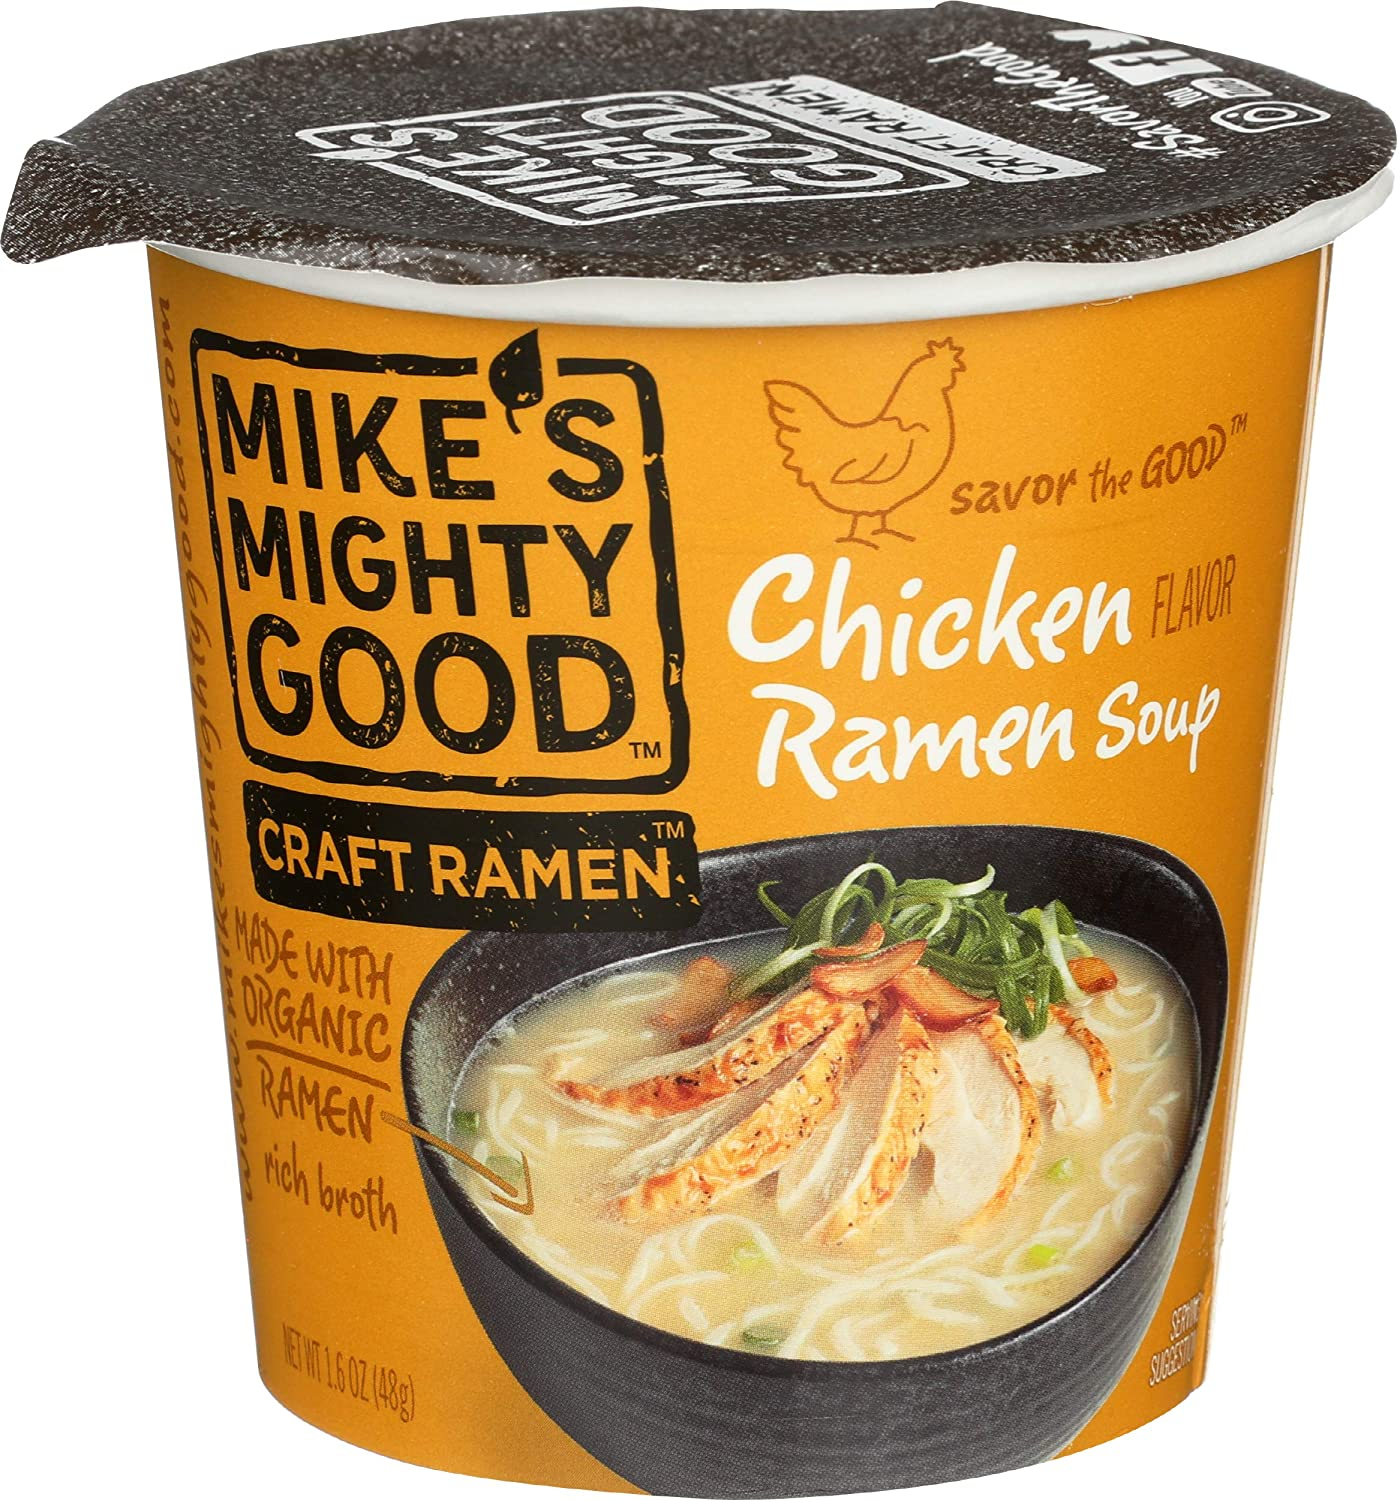 MIKE'S MIGHTY GOOD SOUP OG3 RAMEN CUP Pack shopping El Paso Mall - of CHICKEN 6